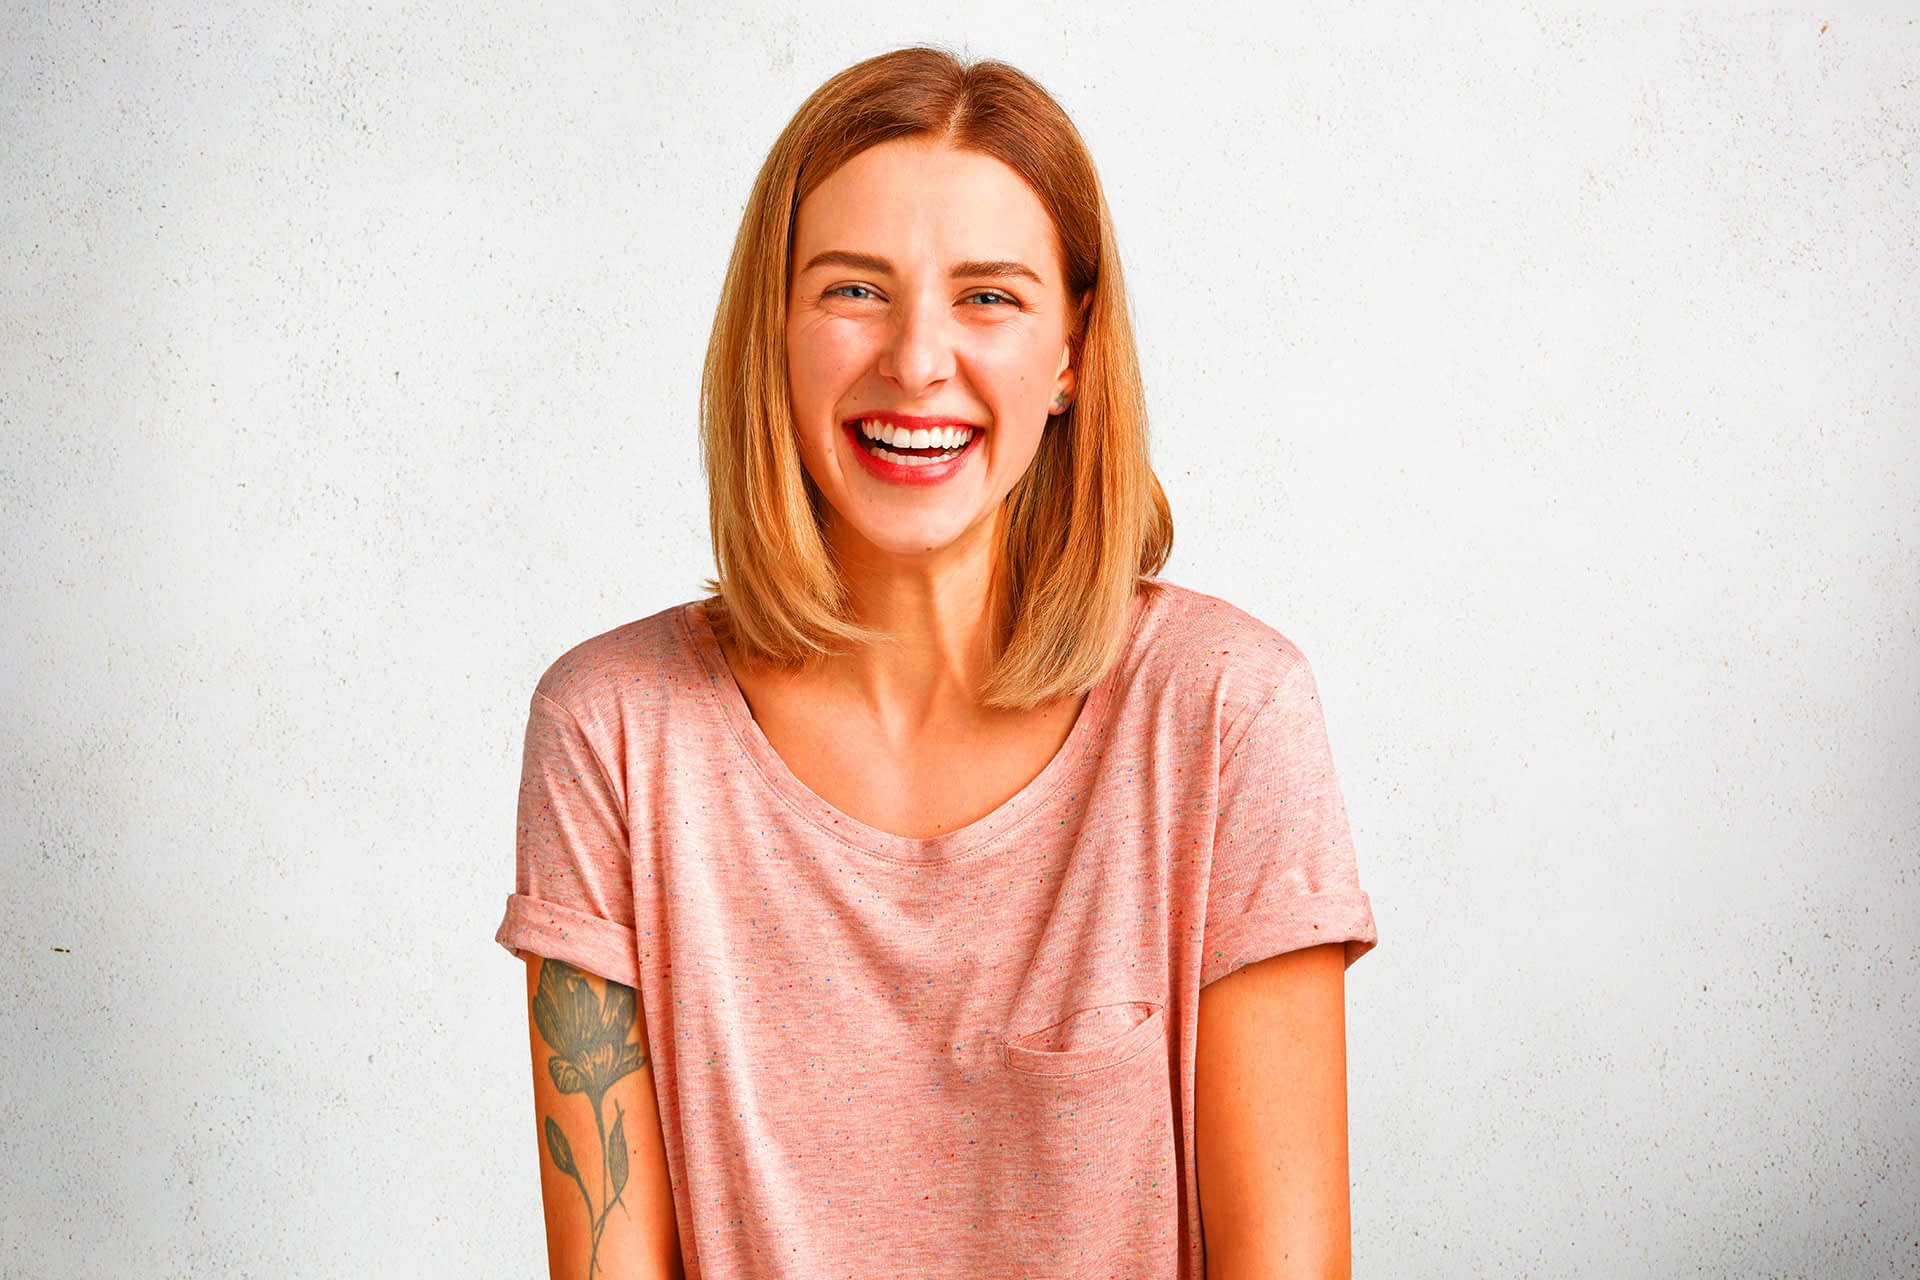 Positive adorable woman with bobbed hairdo, smiles gently at camera, has tattooed arm and healthy skin, being in good mood.